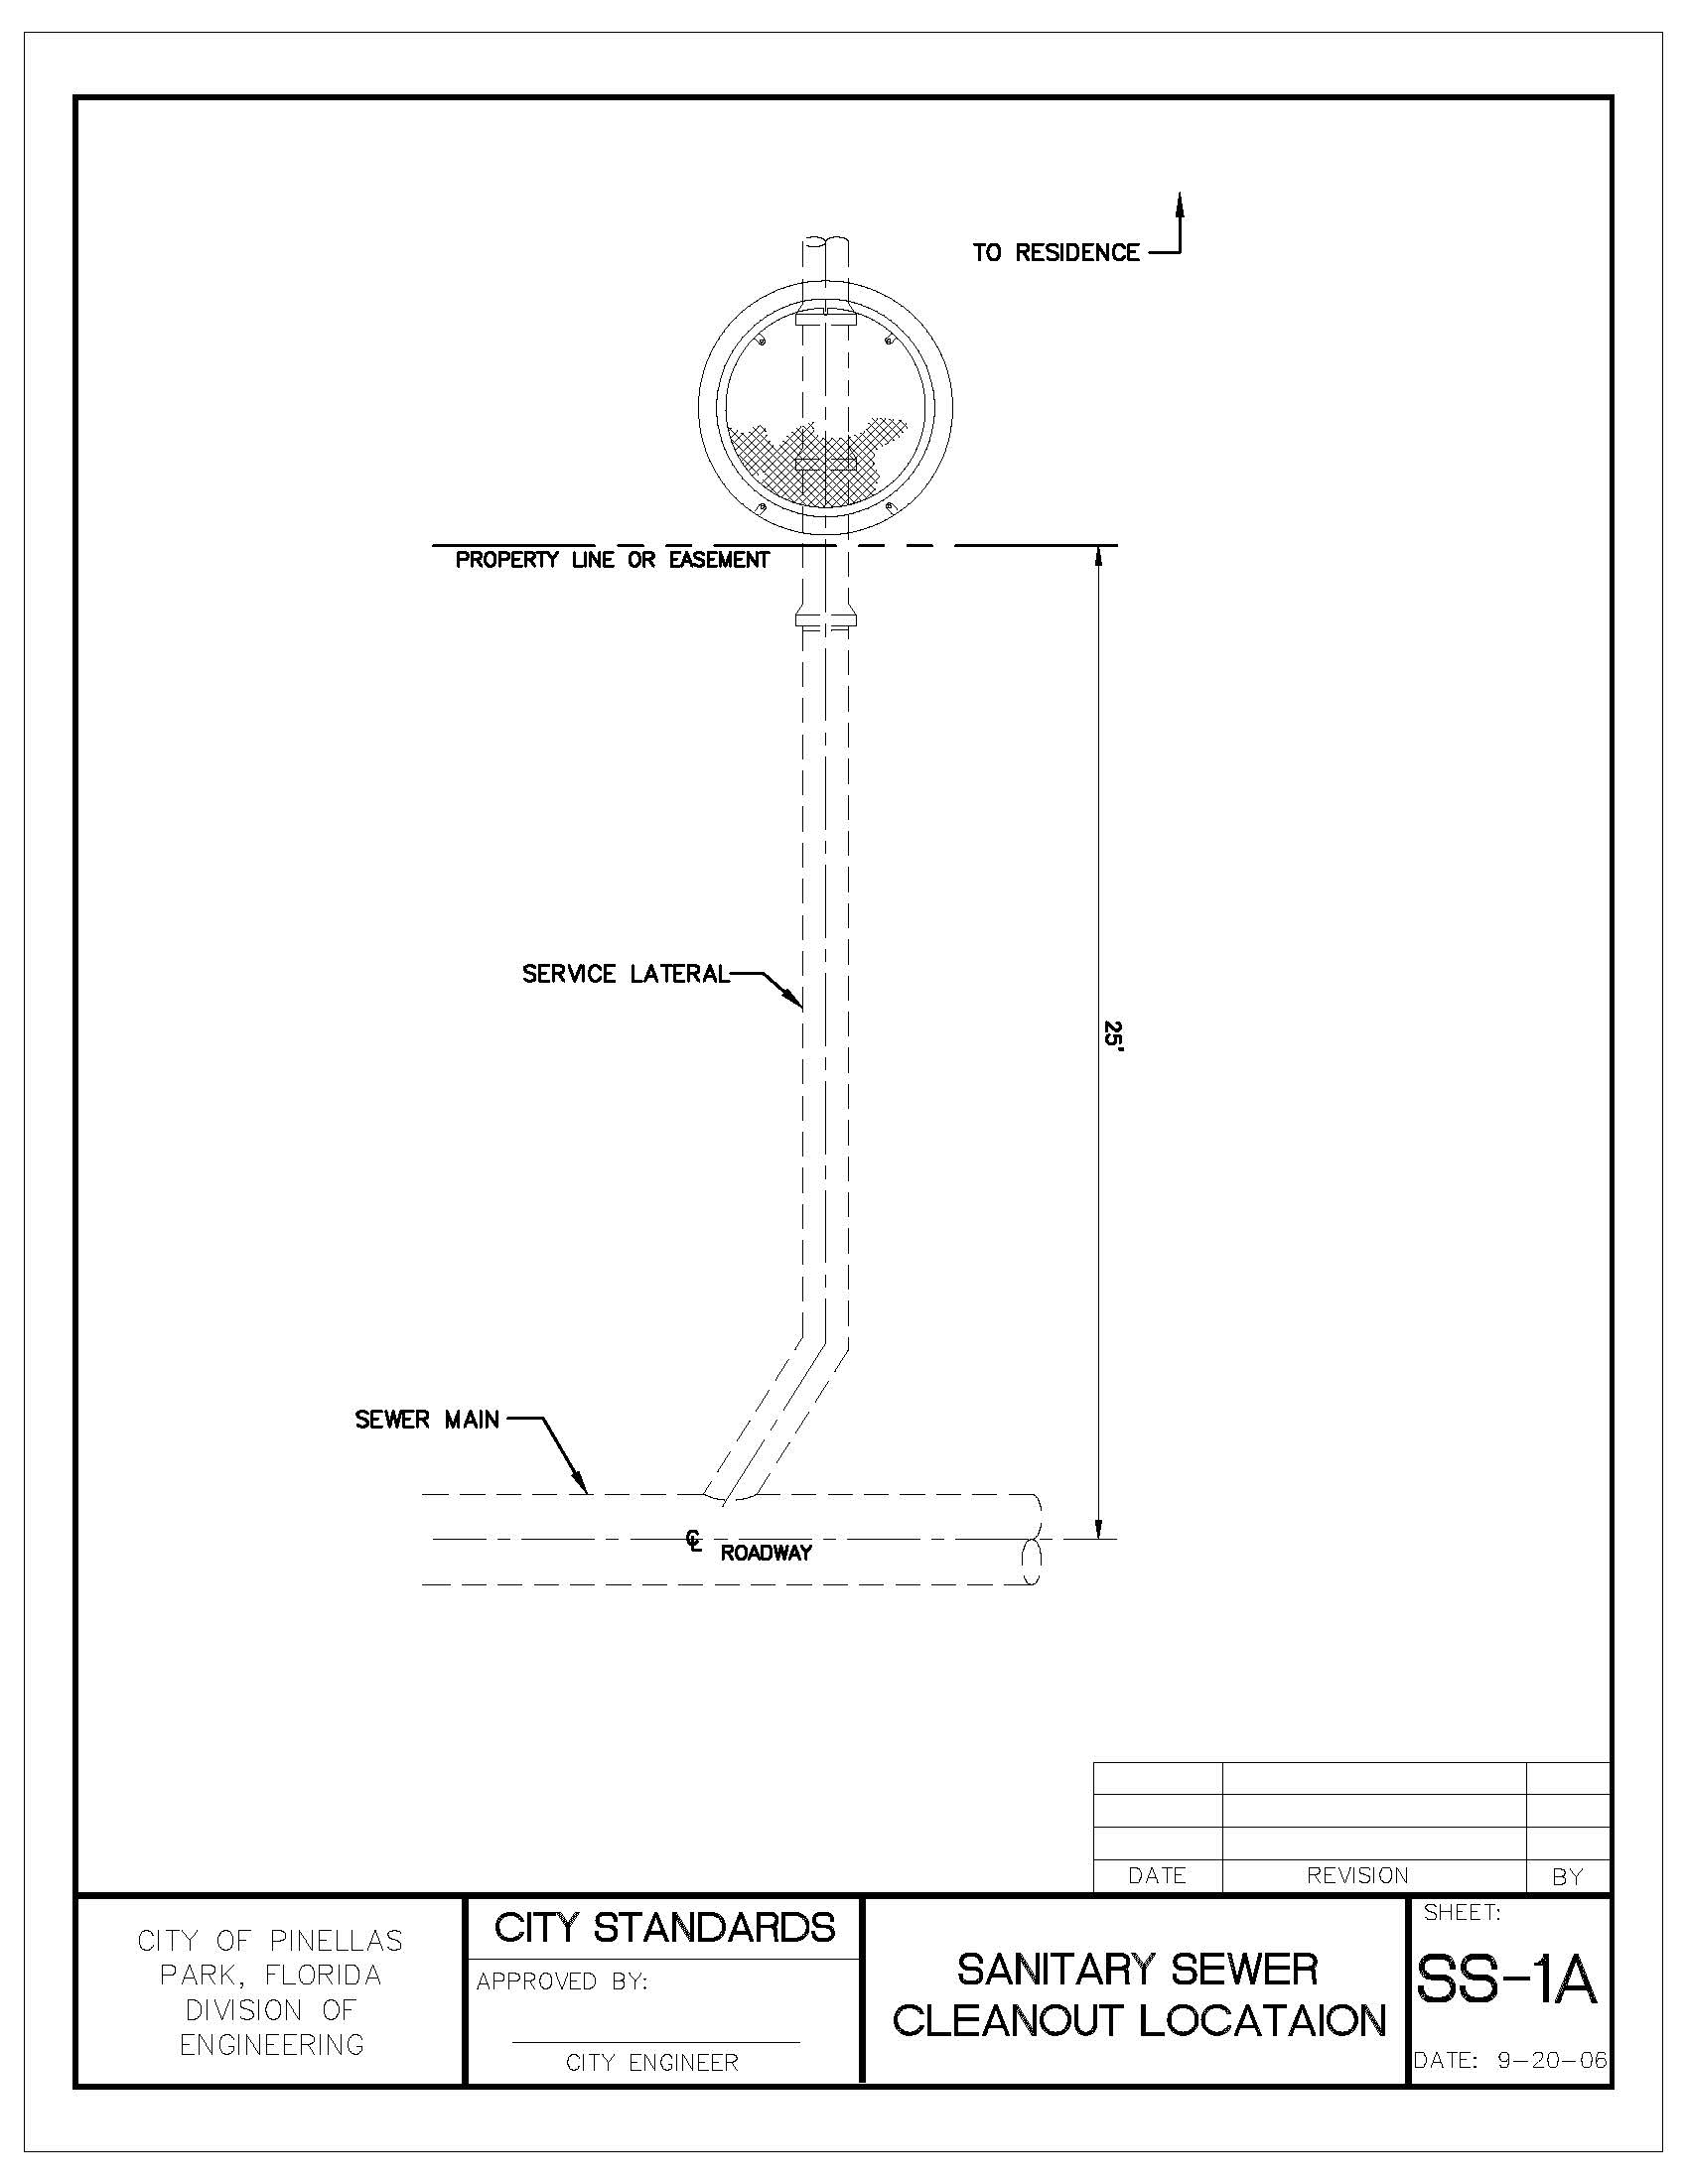 Engineering Manual v5_201908121127291138_Page_065 sanitary sewer cleanout location